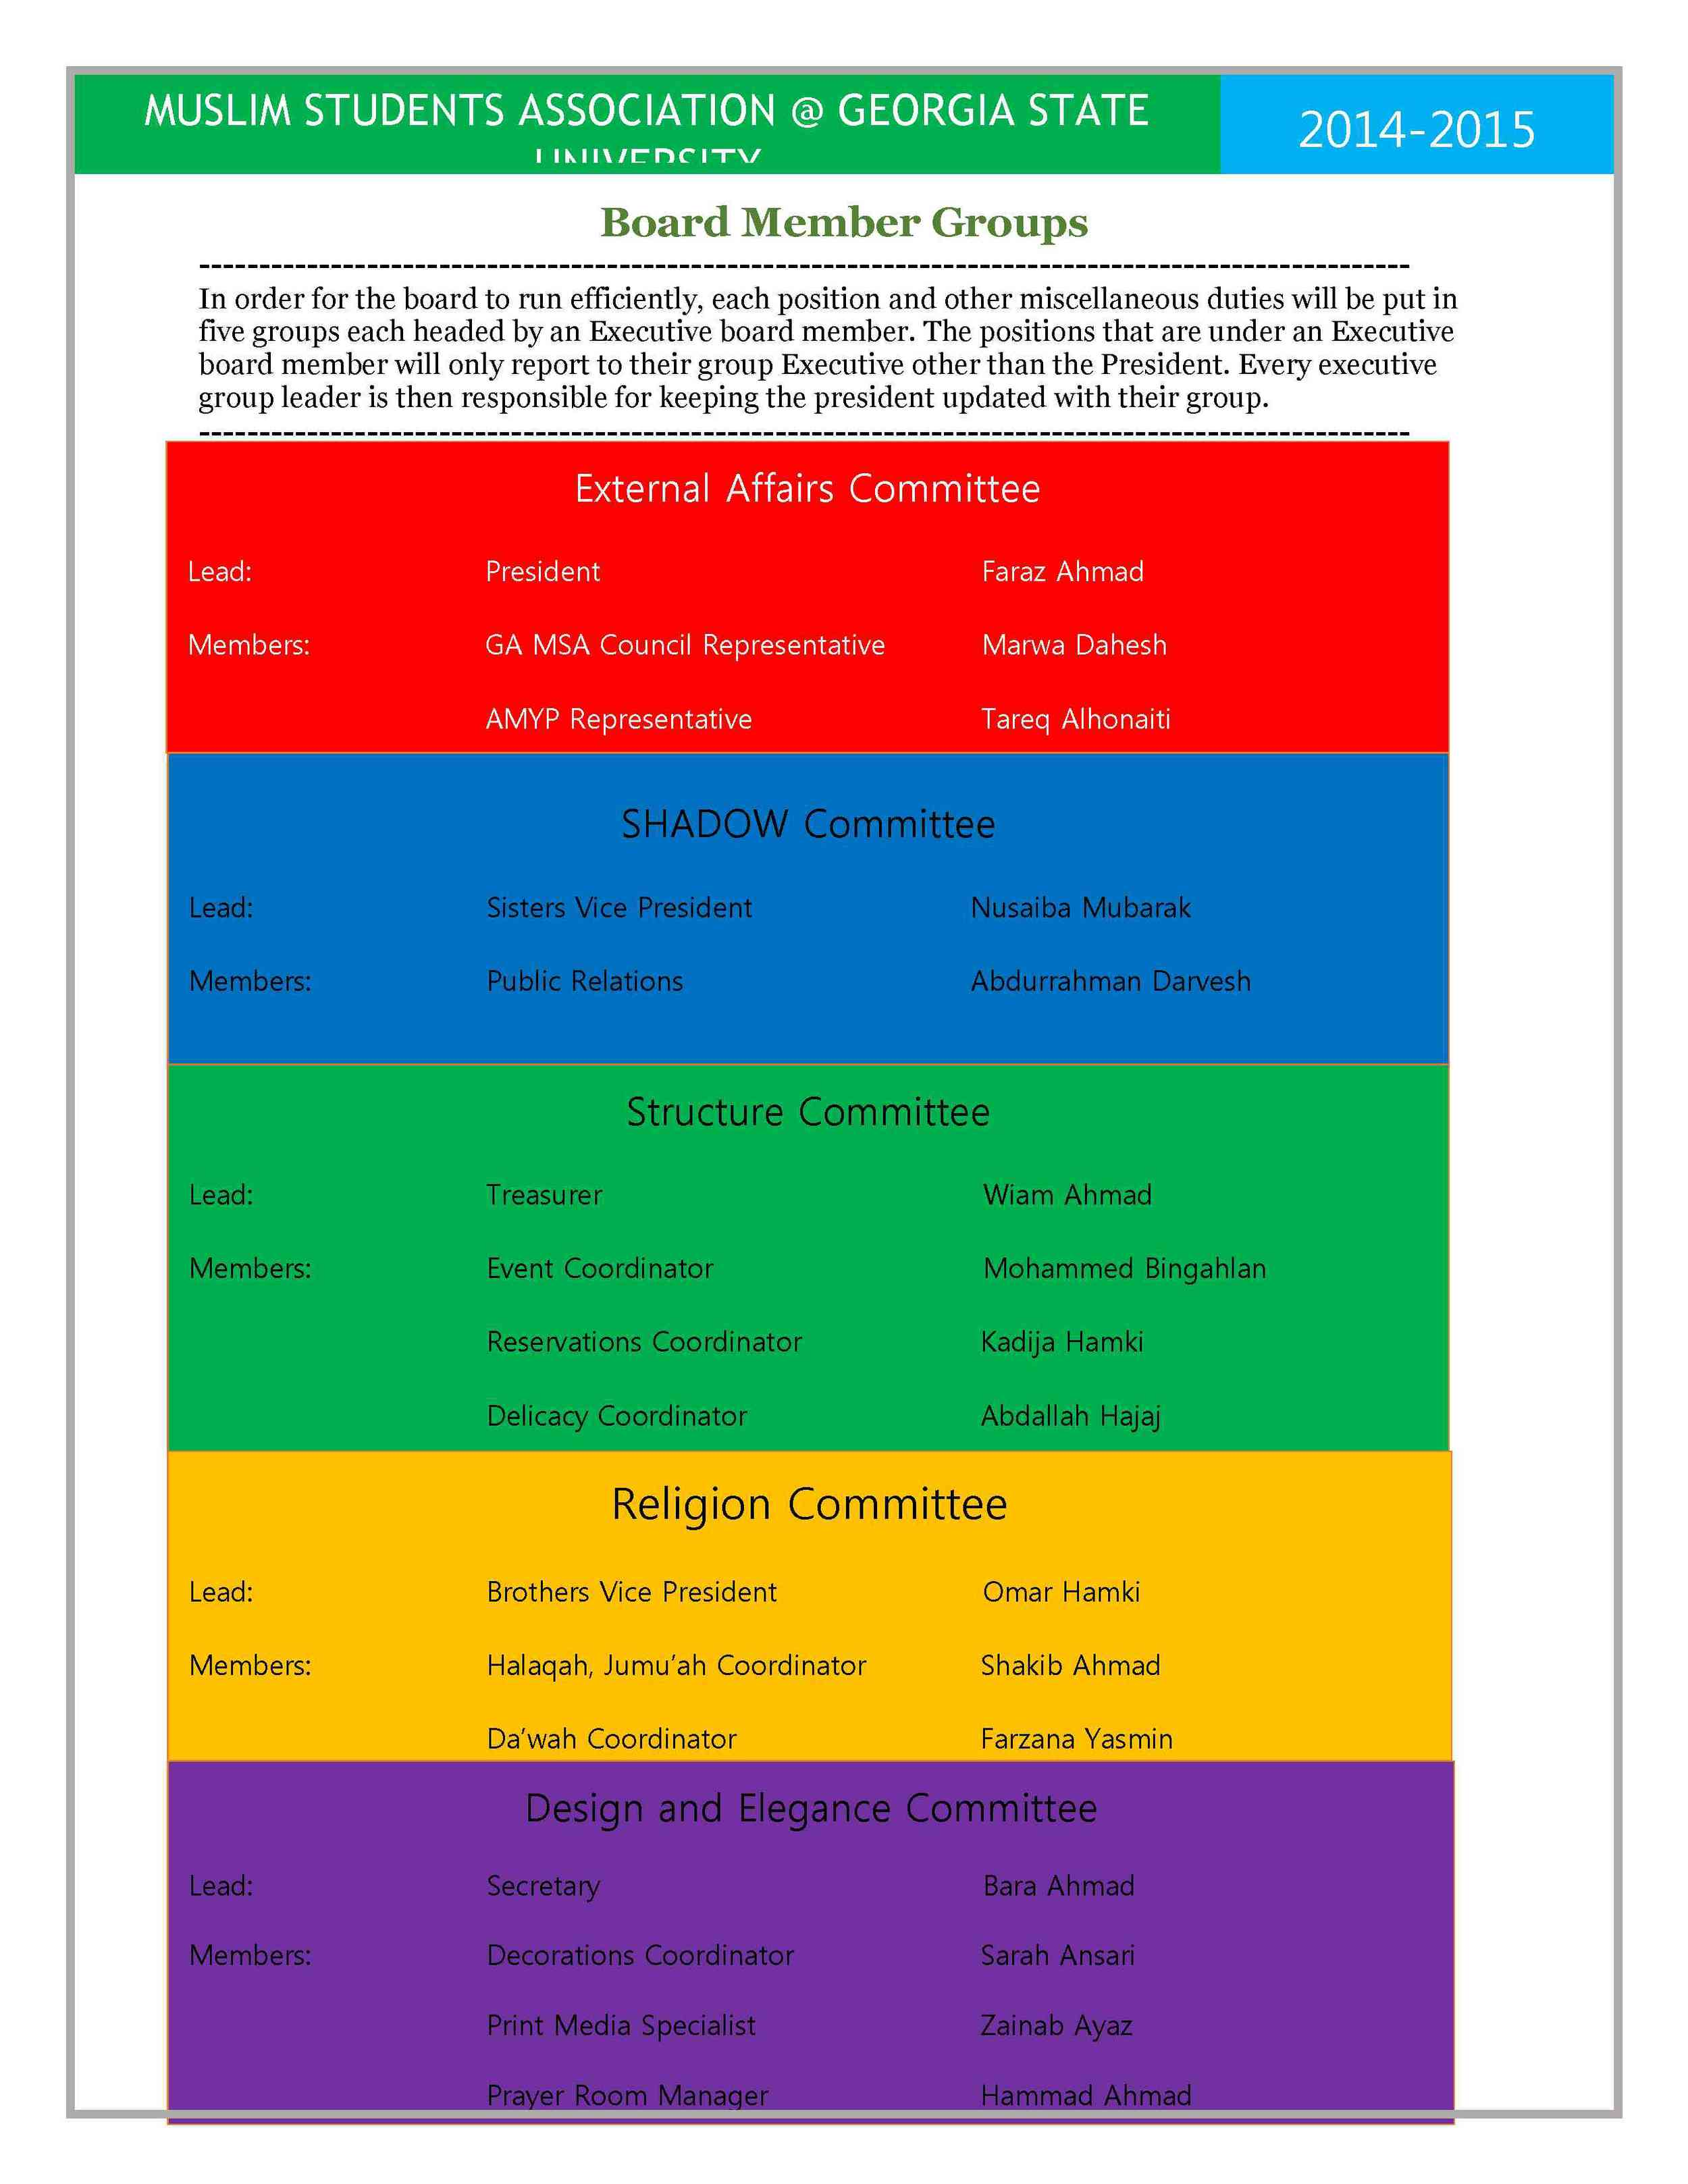 Organization Handbook FINALIZED 7.15.20145.jpg